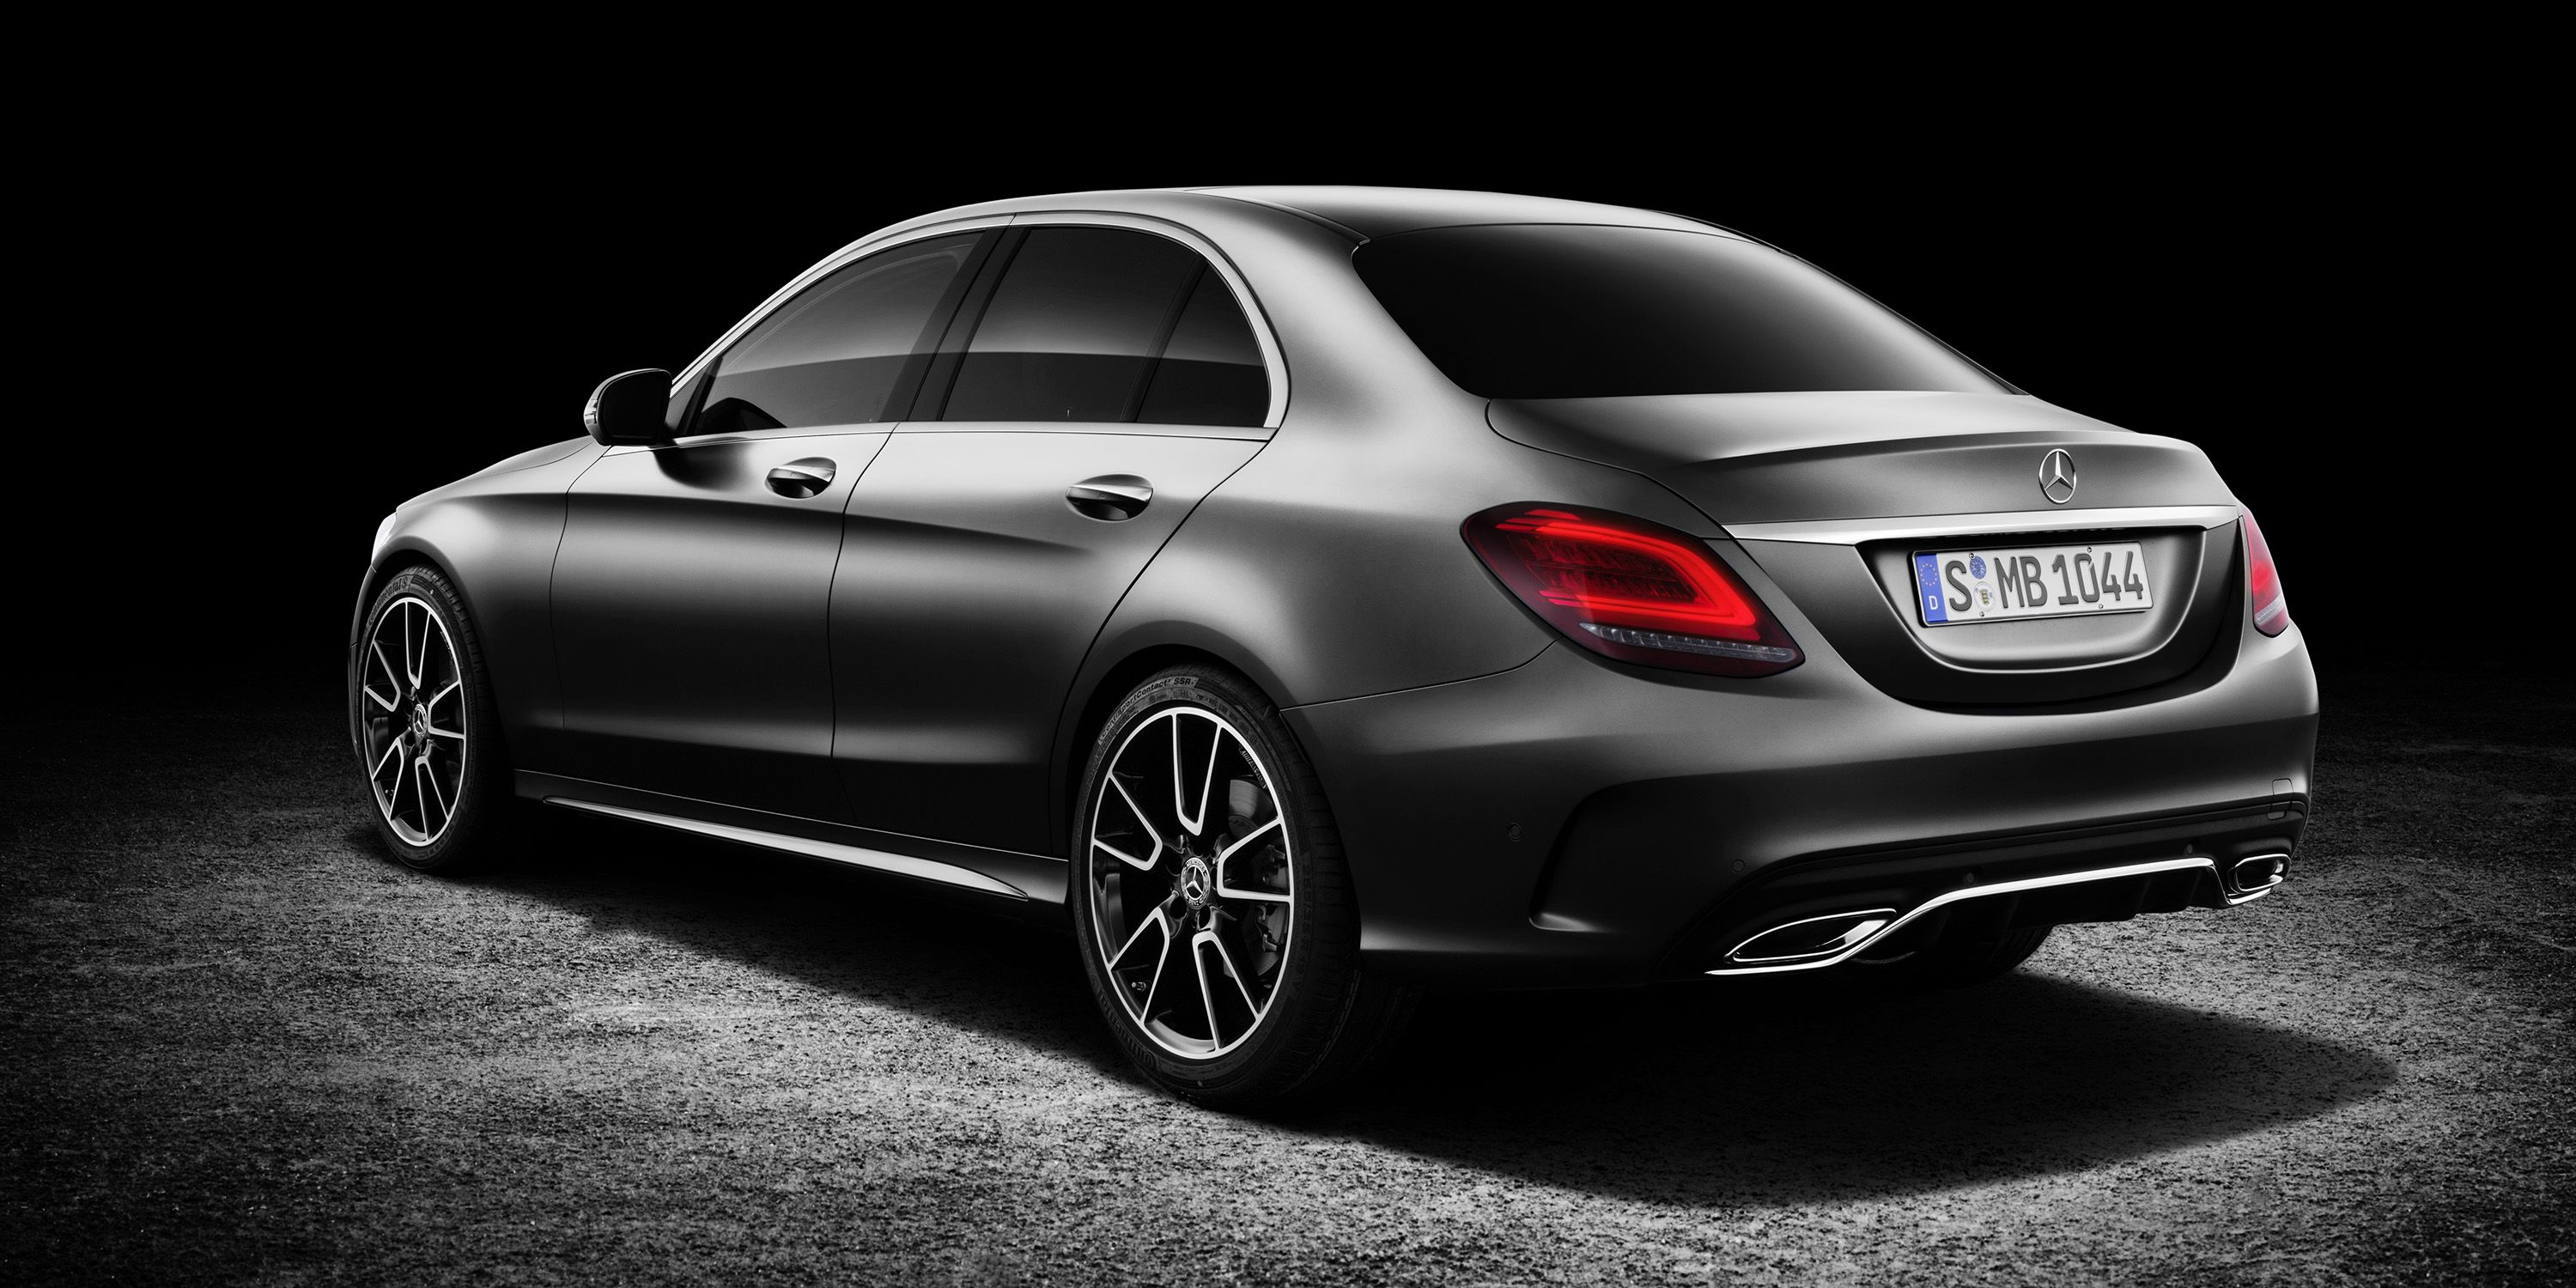 mercedes benz 2019 c300 The 2019 Mercedes Benz C300 Looks The Same, But Gets Lots of New Tech mercedes benz 2019 c300